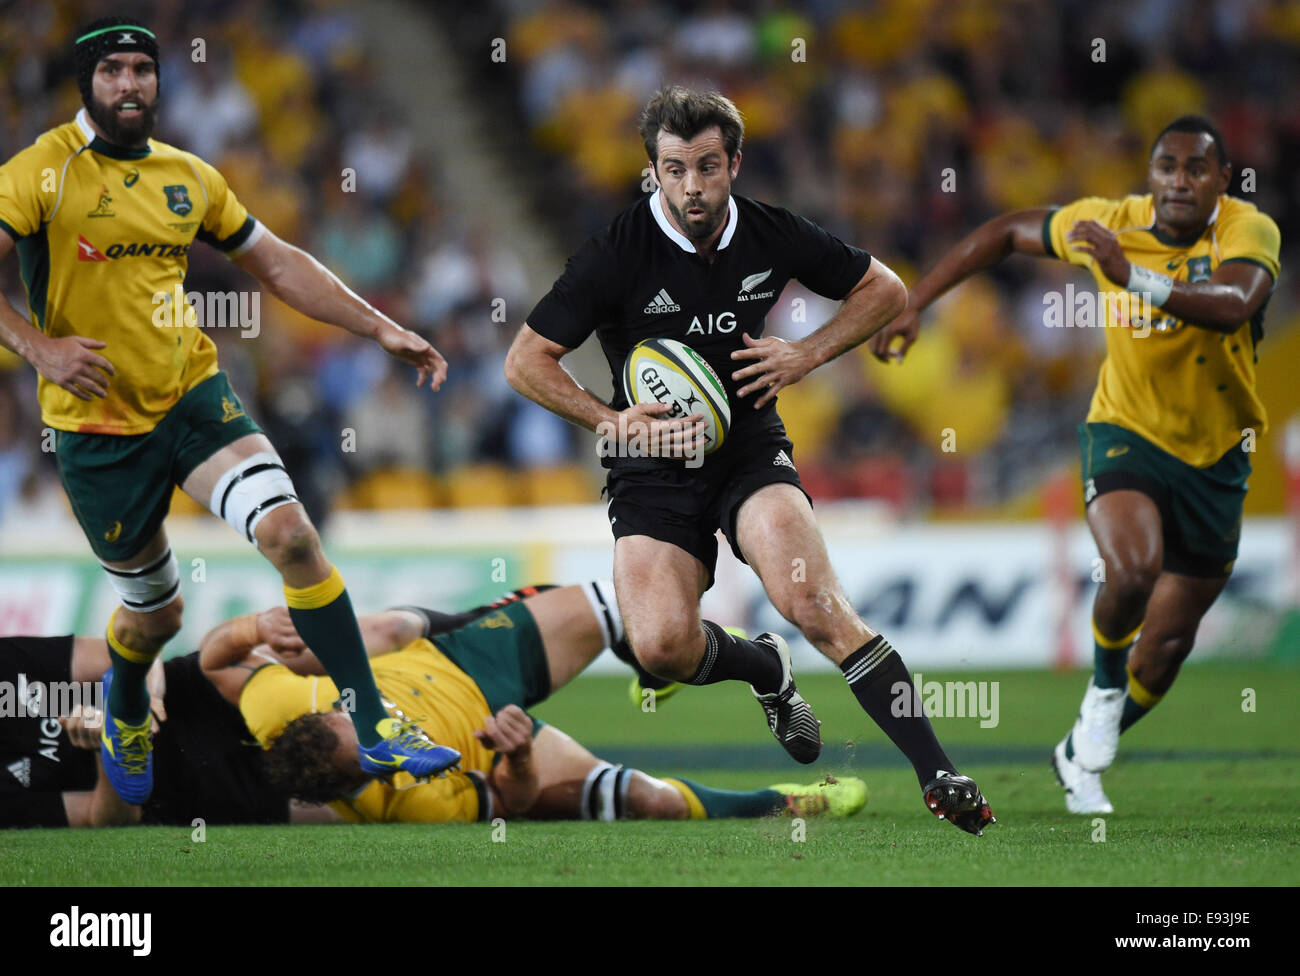 Suncorp Stadium Brisbane Australia 18th Oct 2014 Conrad Smith Stock Photo Alamy